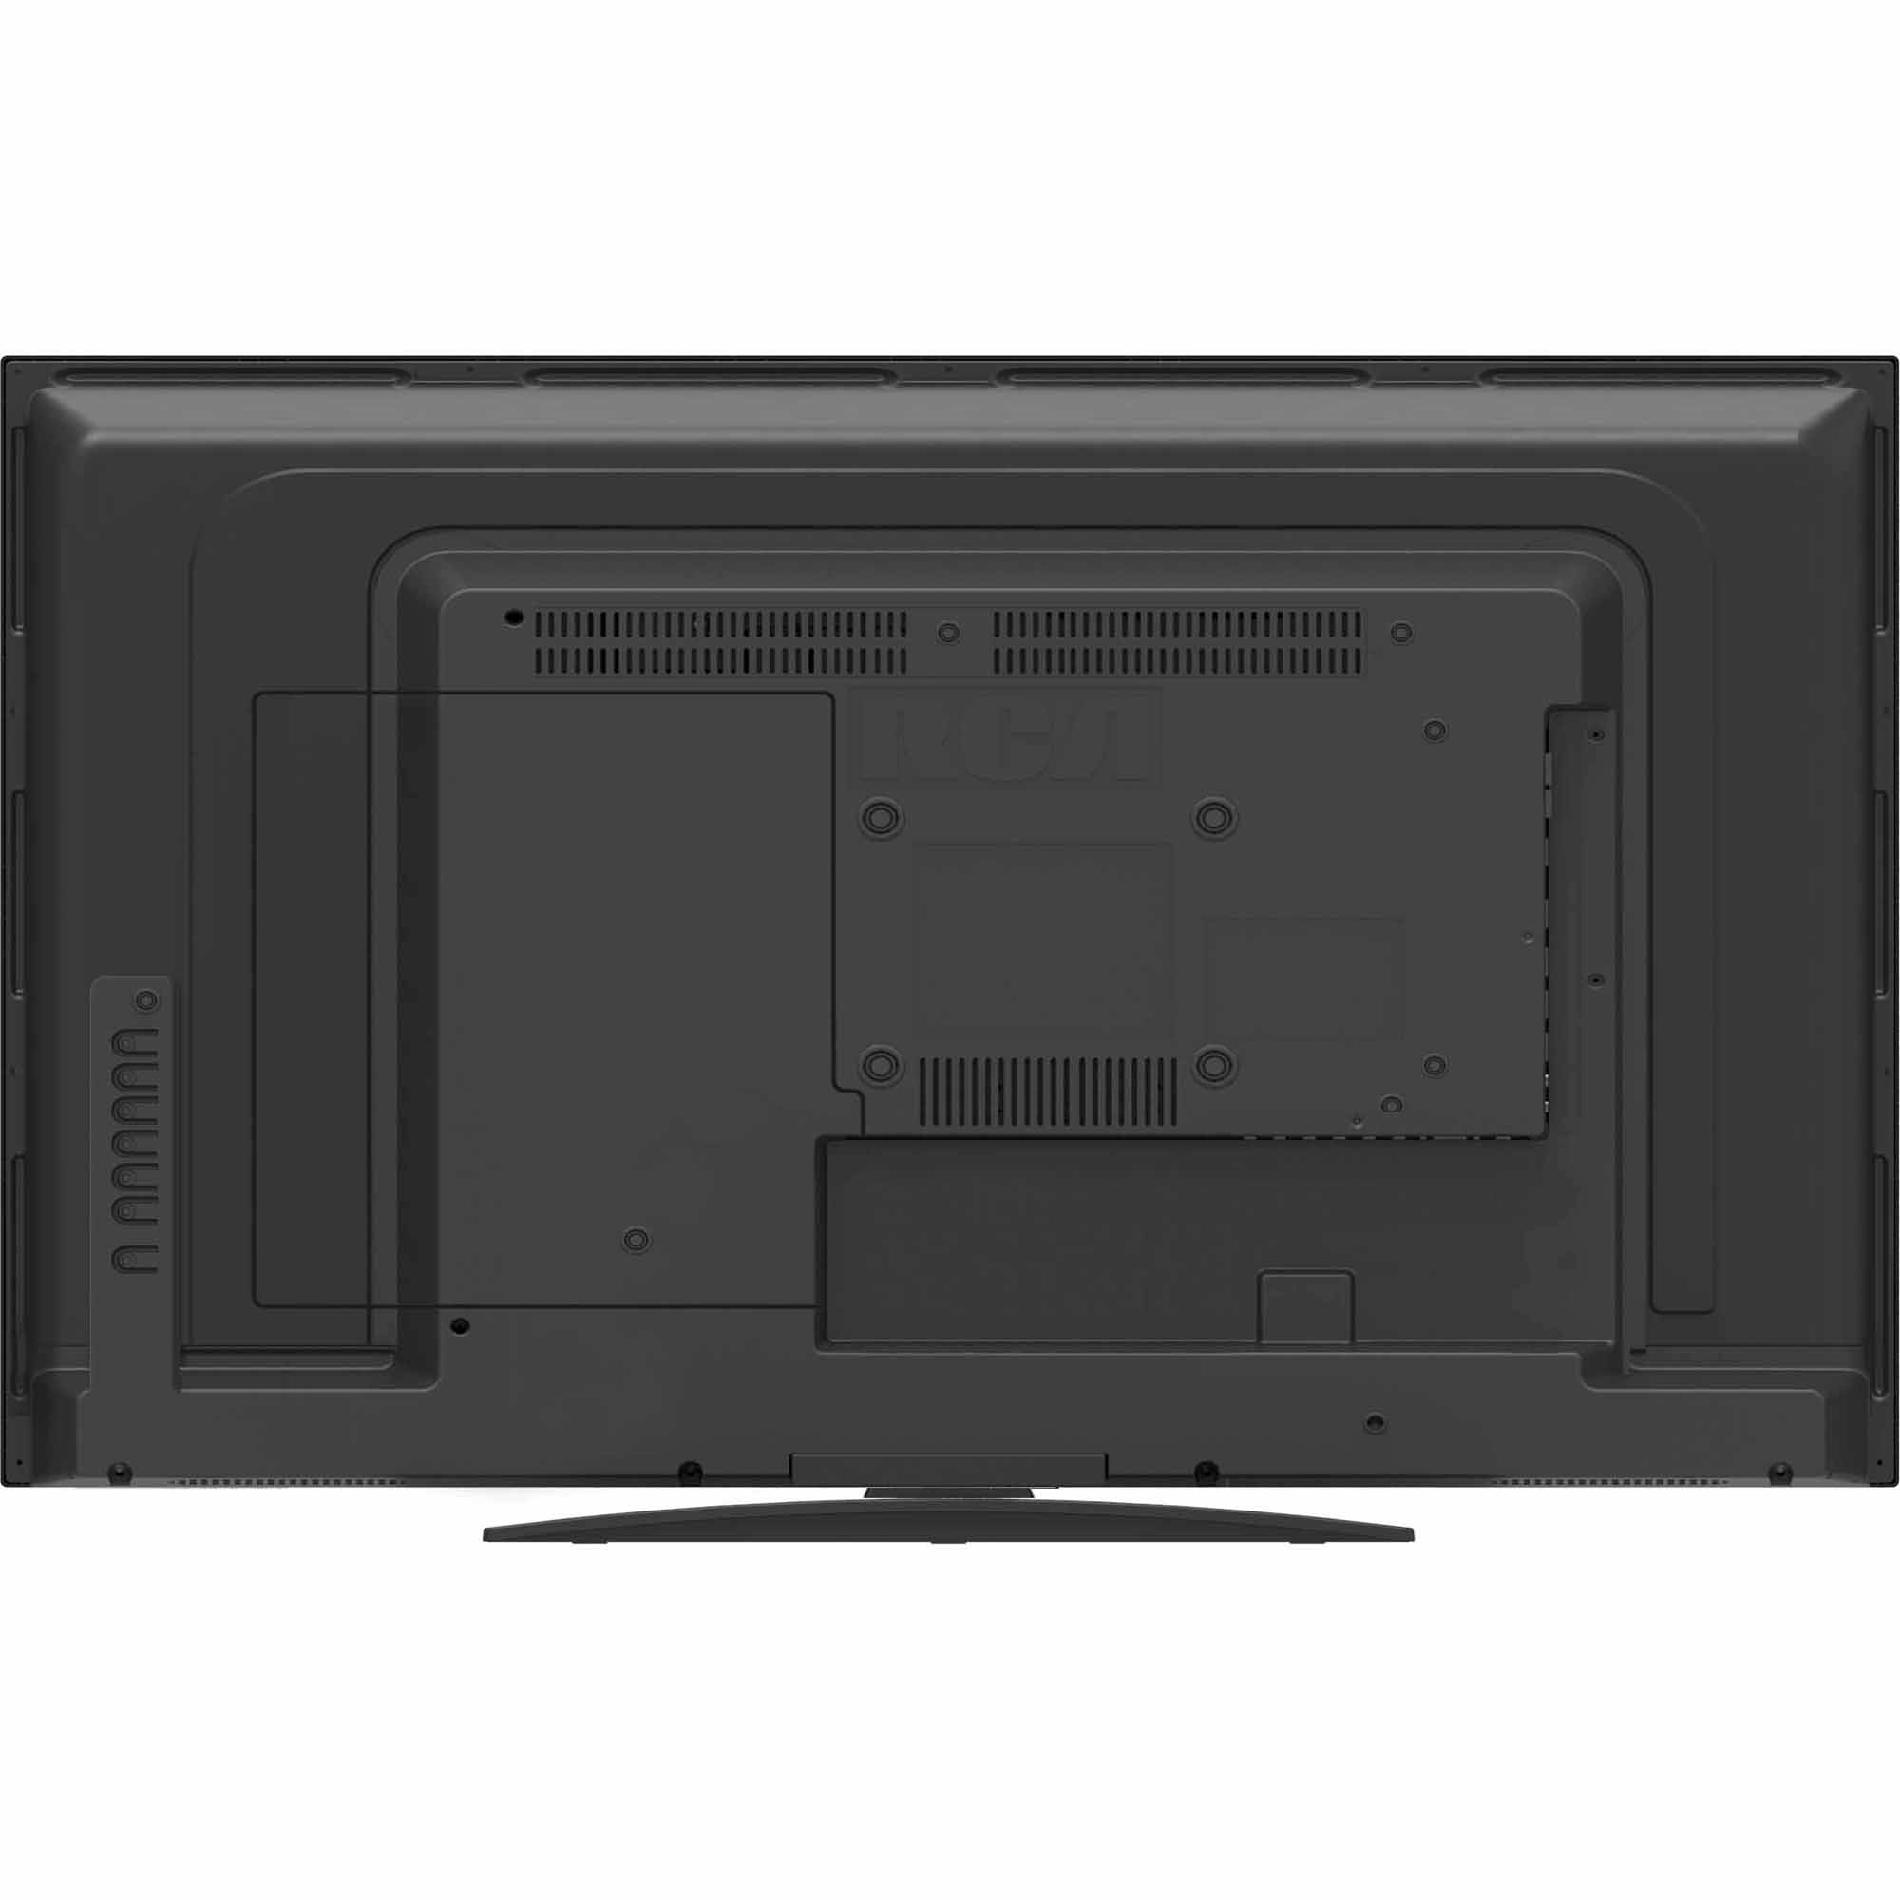 "RCA 24"" Class 1080p 60 Hz Rear-Lit LED HDTV - LED24G45RQ"